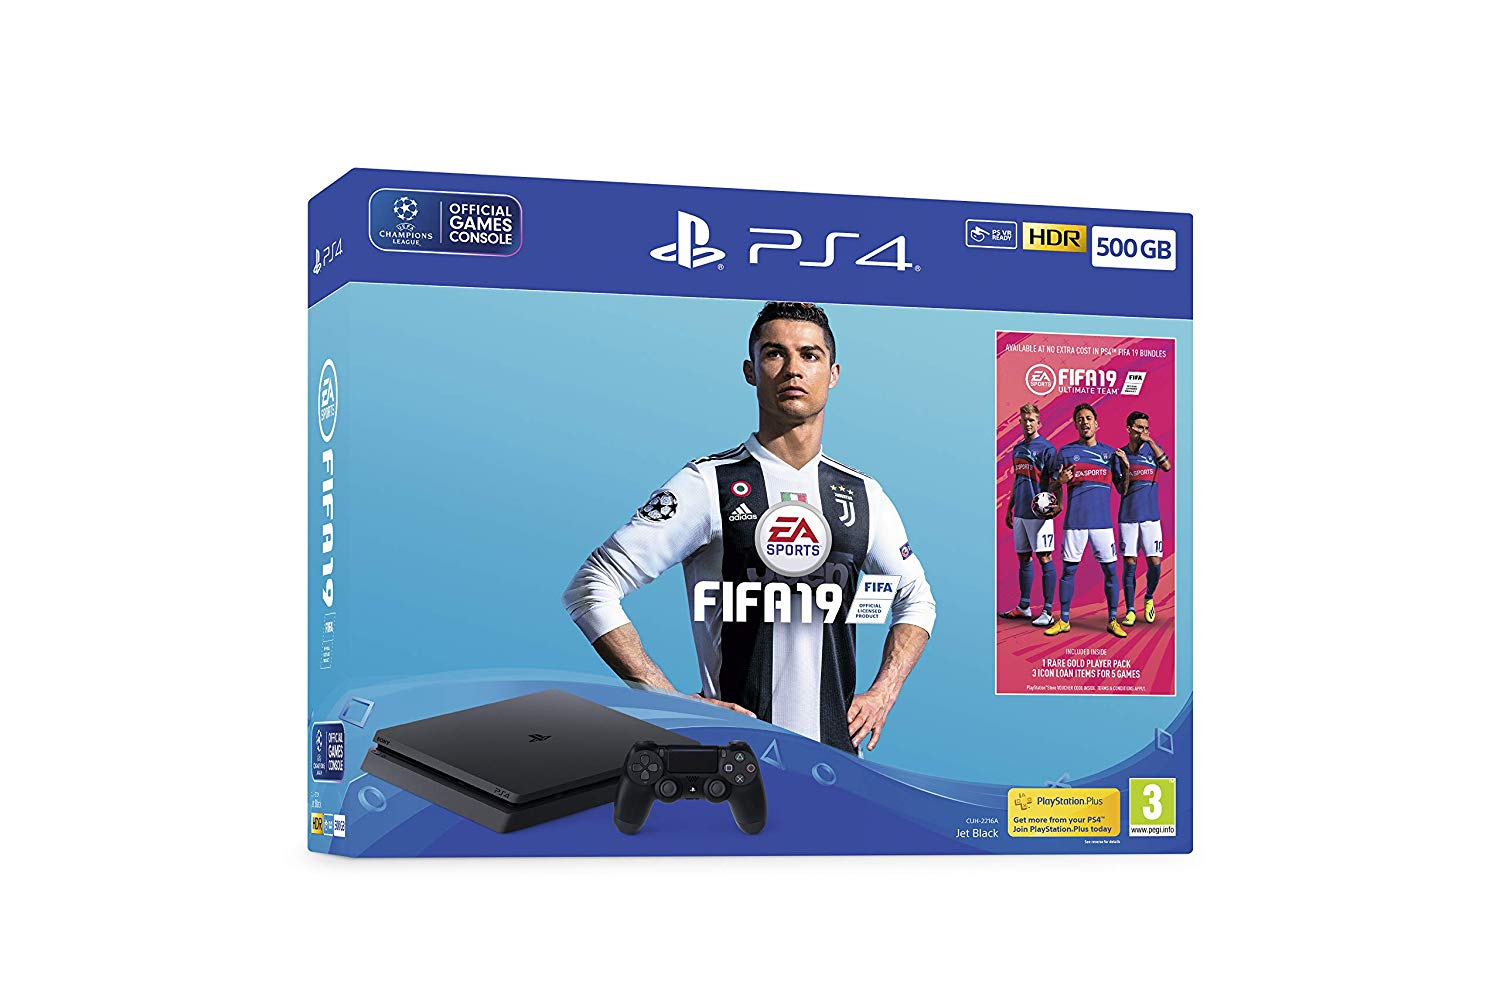 Sony PlayStation 4 500GB Console (Black) with FIFA 19 Bundle New, PS4 Console, DVDMEGASTORE, DVDMEGASTORE